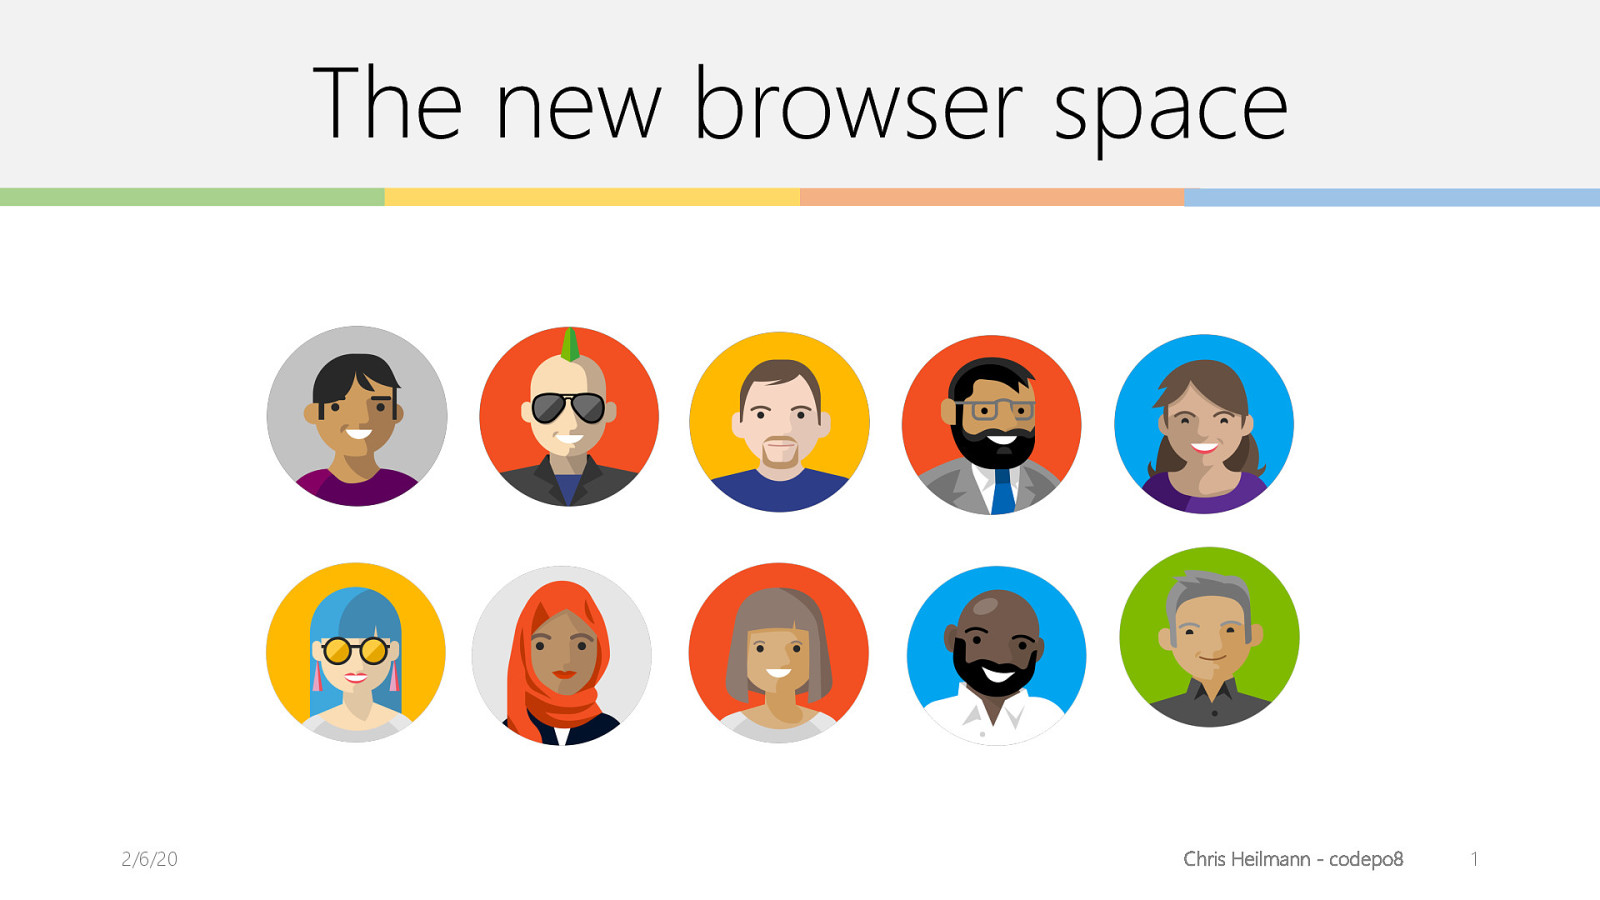 The new browser space